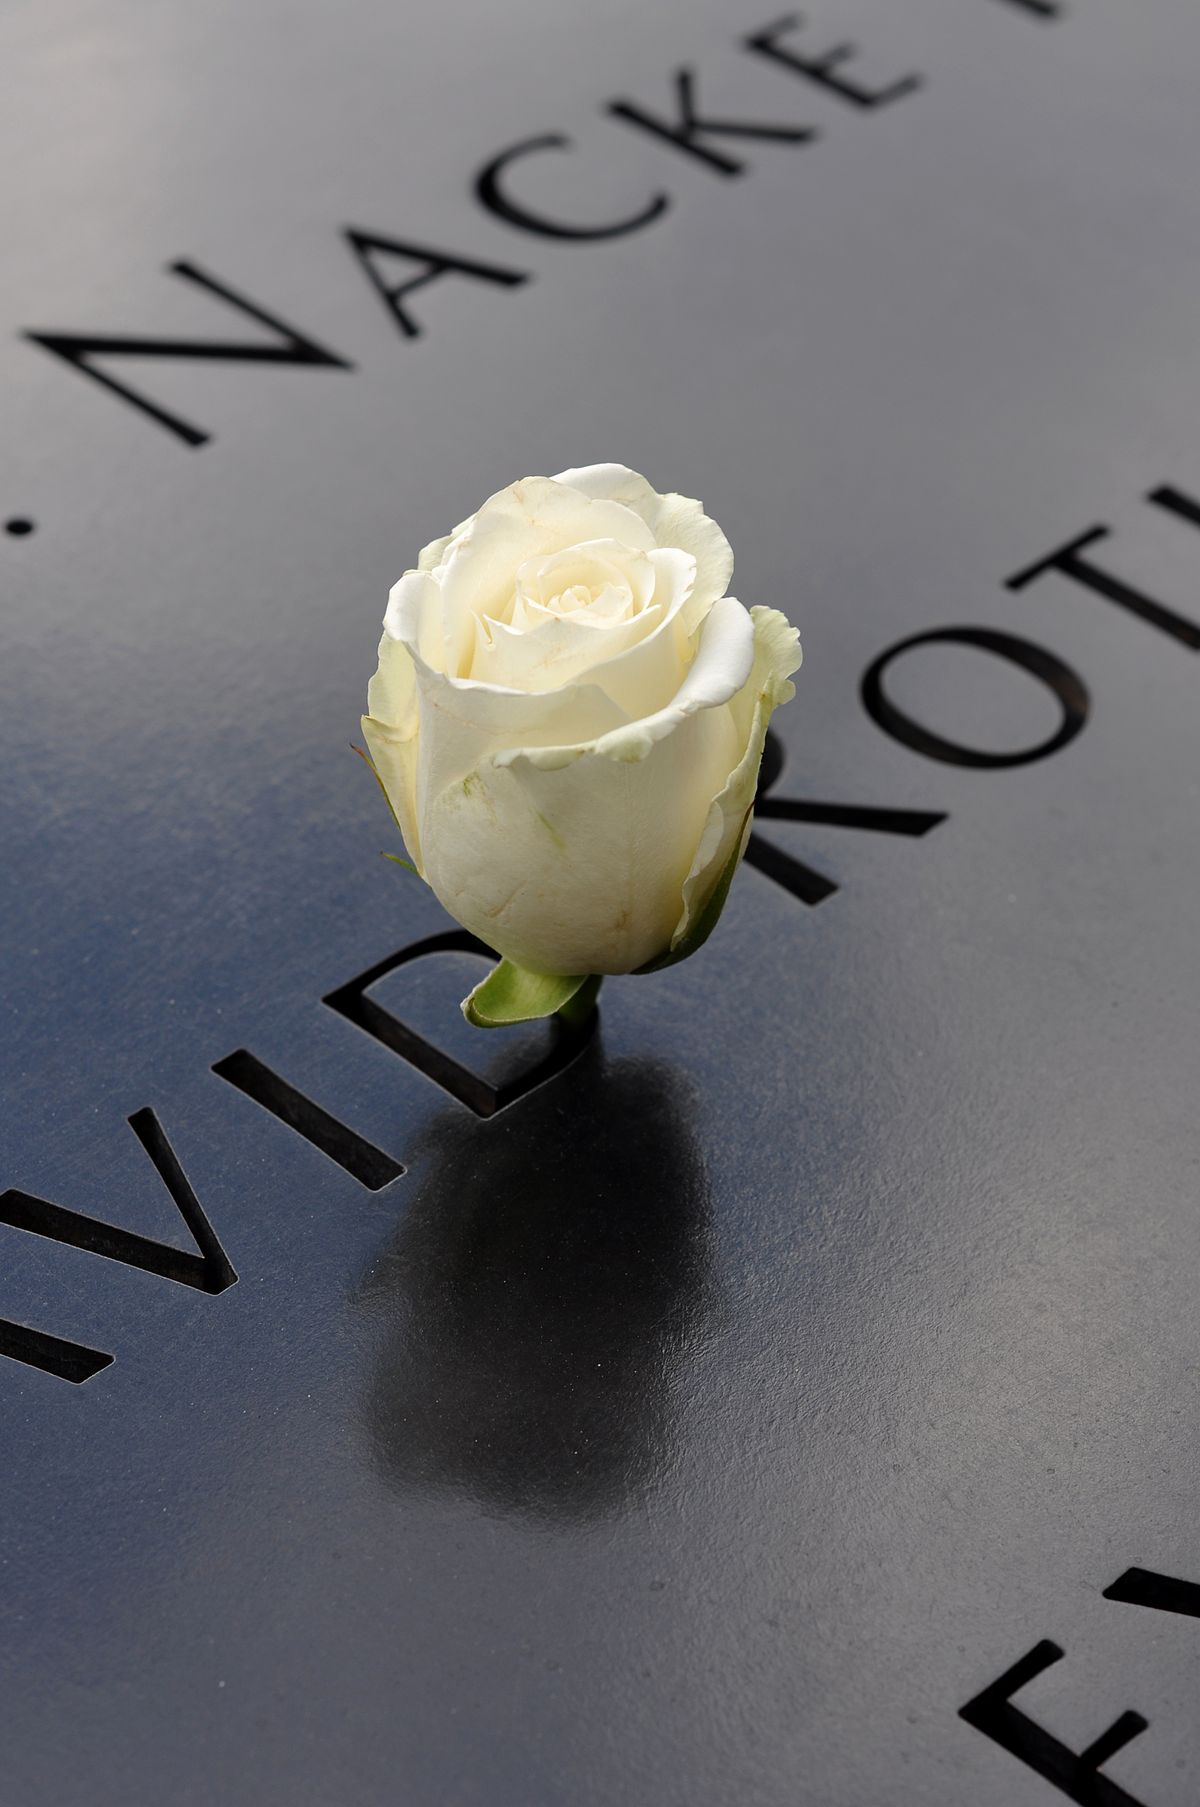 White-rose-at-9-11-memorial.JPG